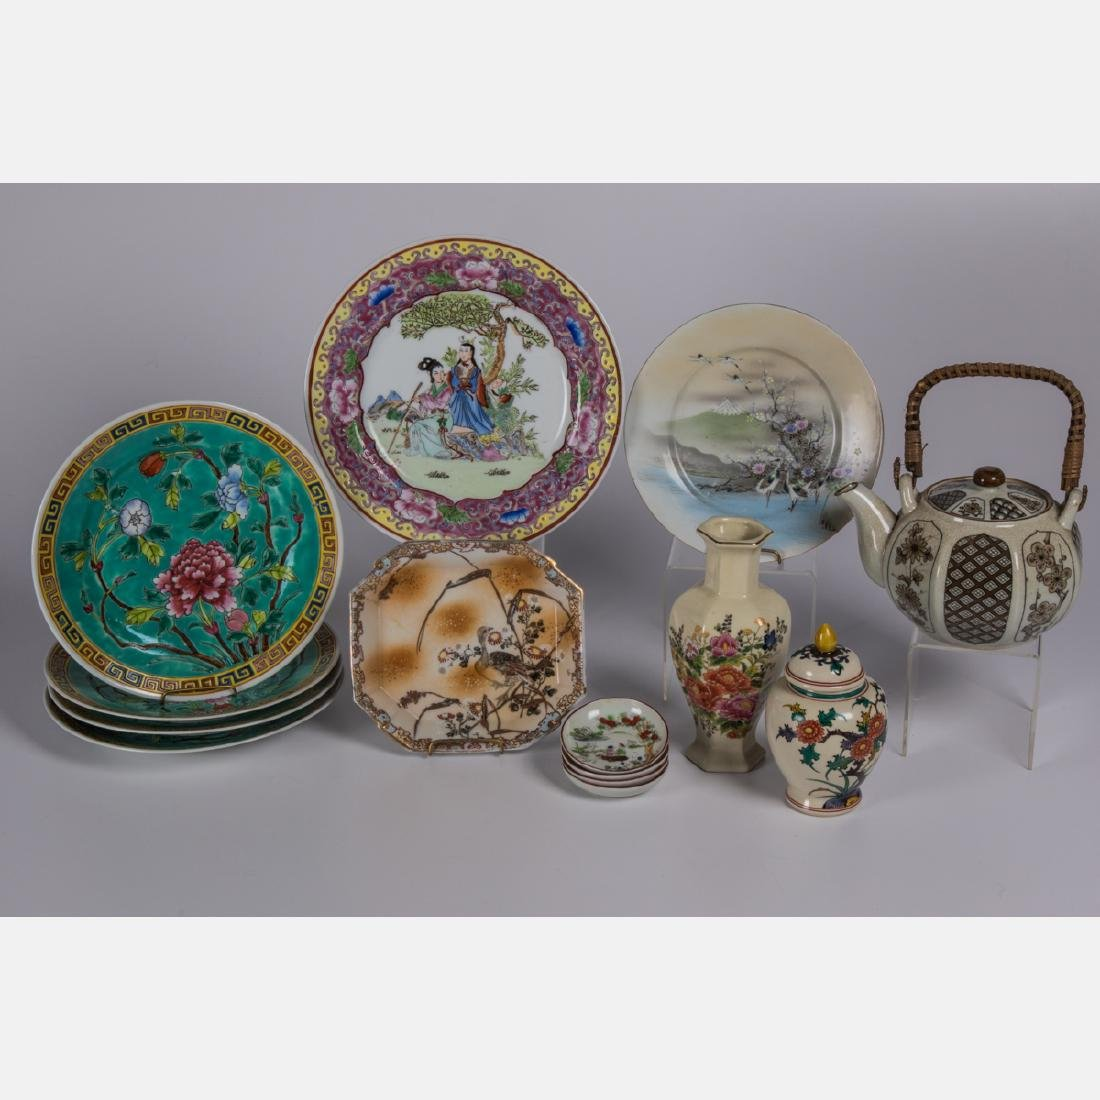 A Group of Fourteen Asian Porcelain and Ceramic Serving